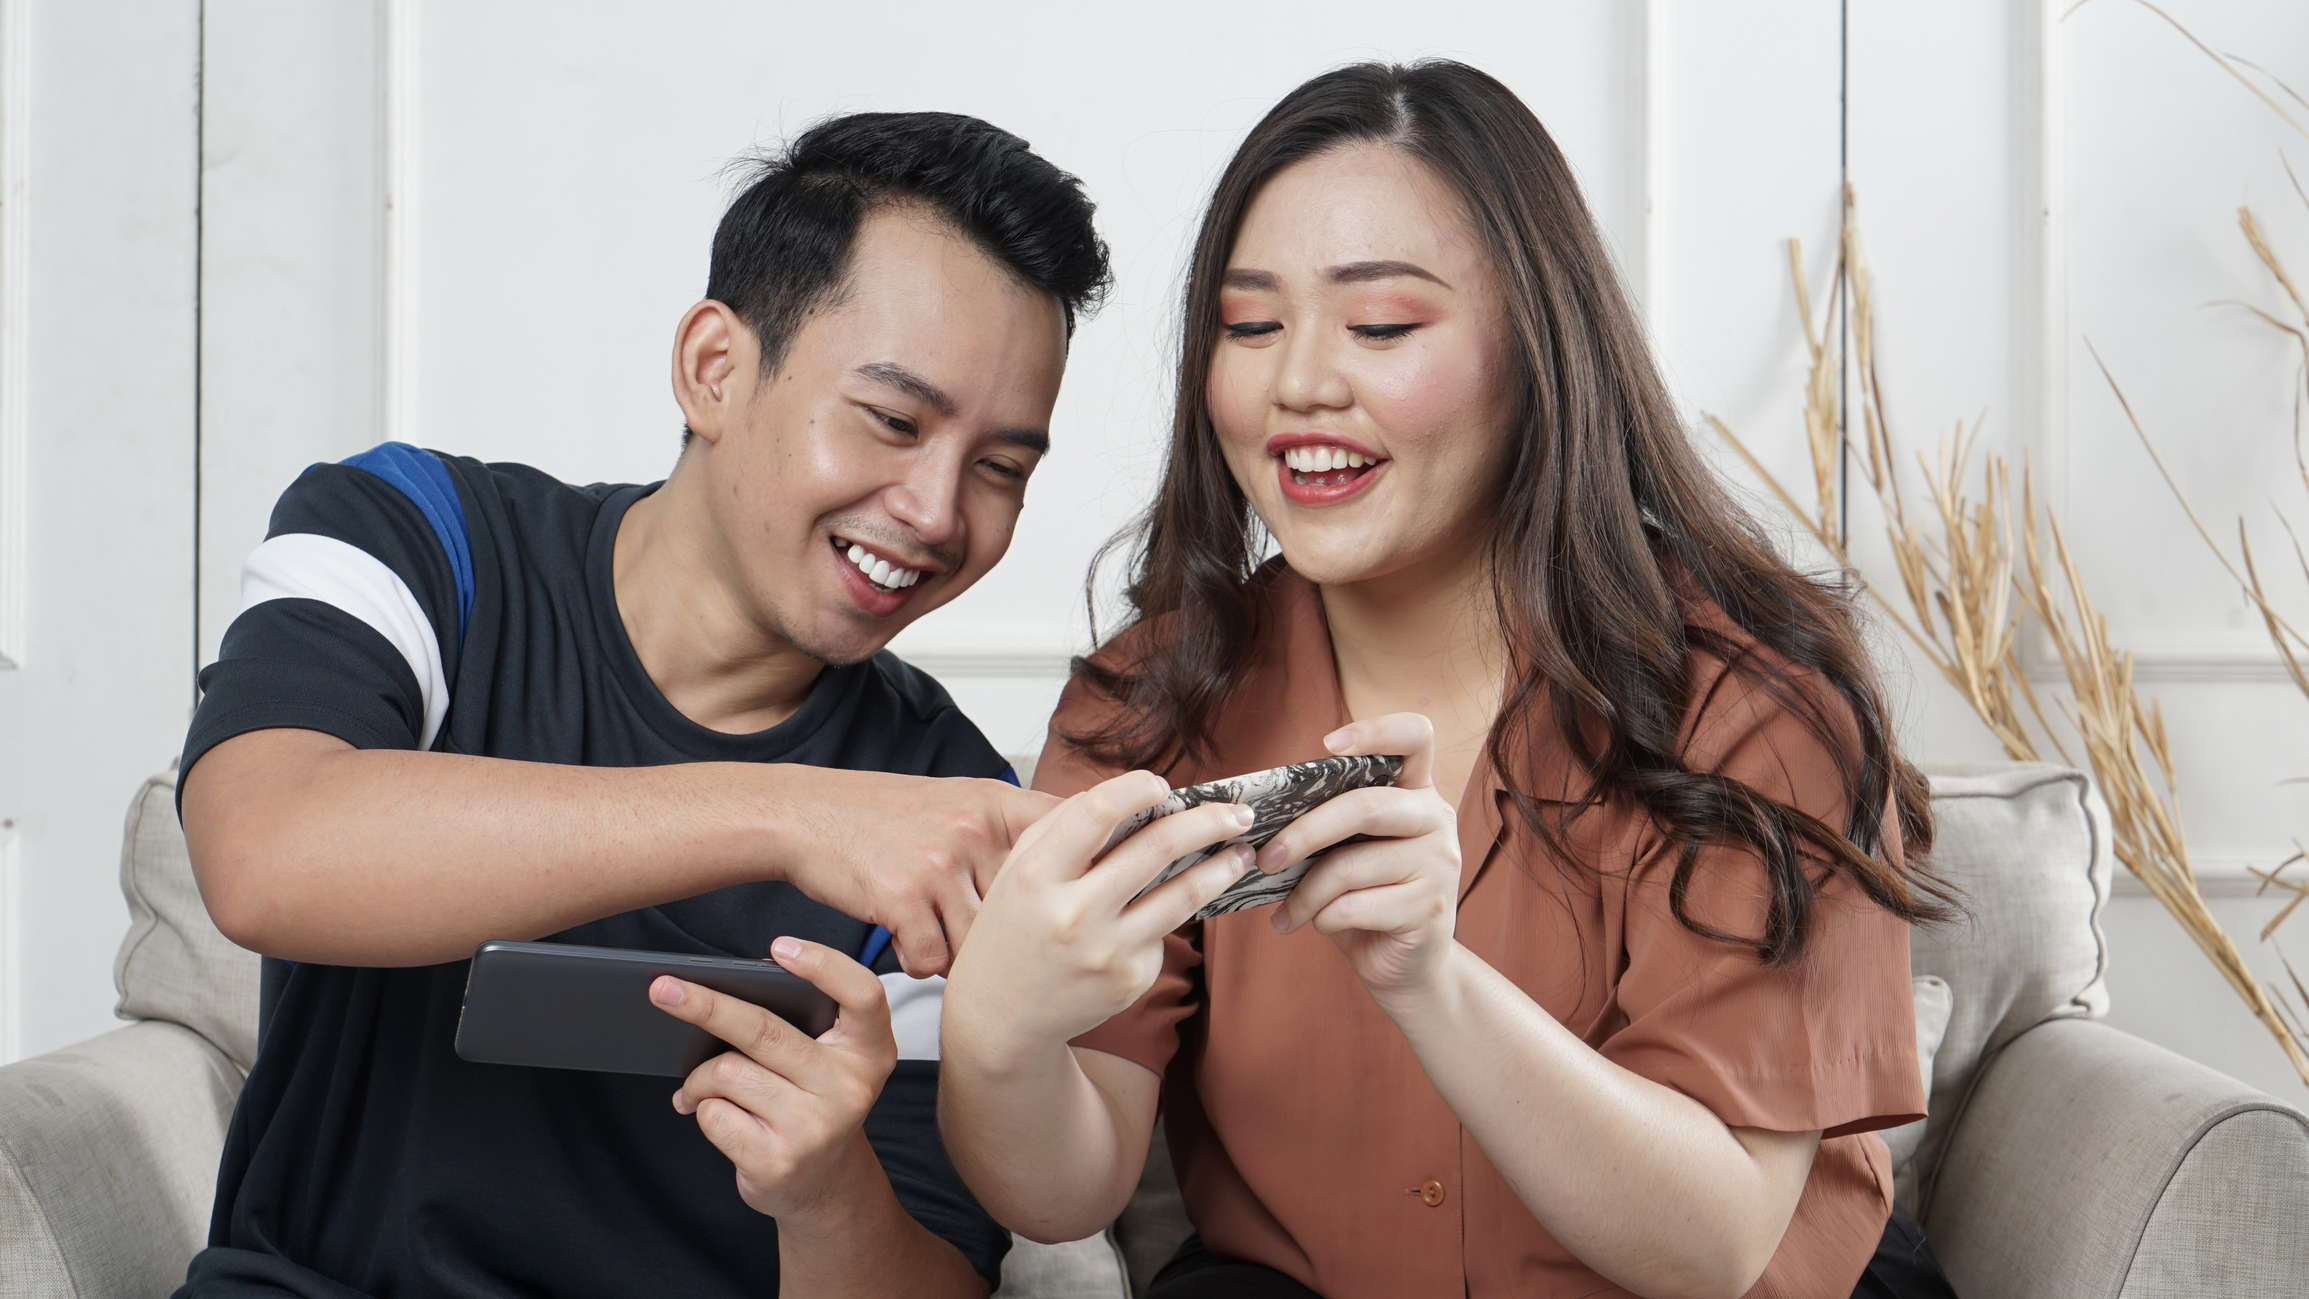 build trust with your brand. two people looking at a phone